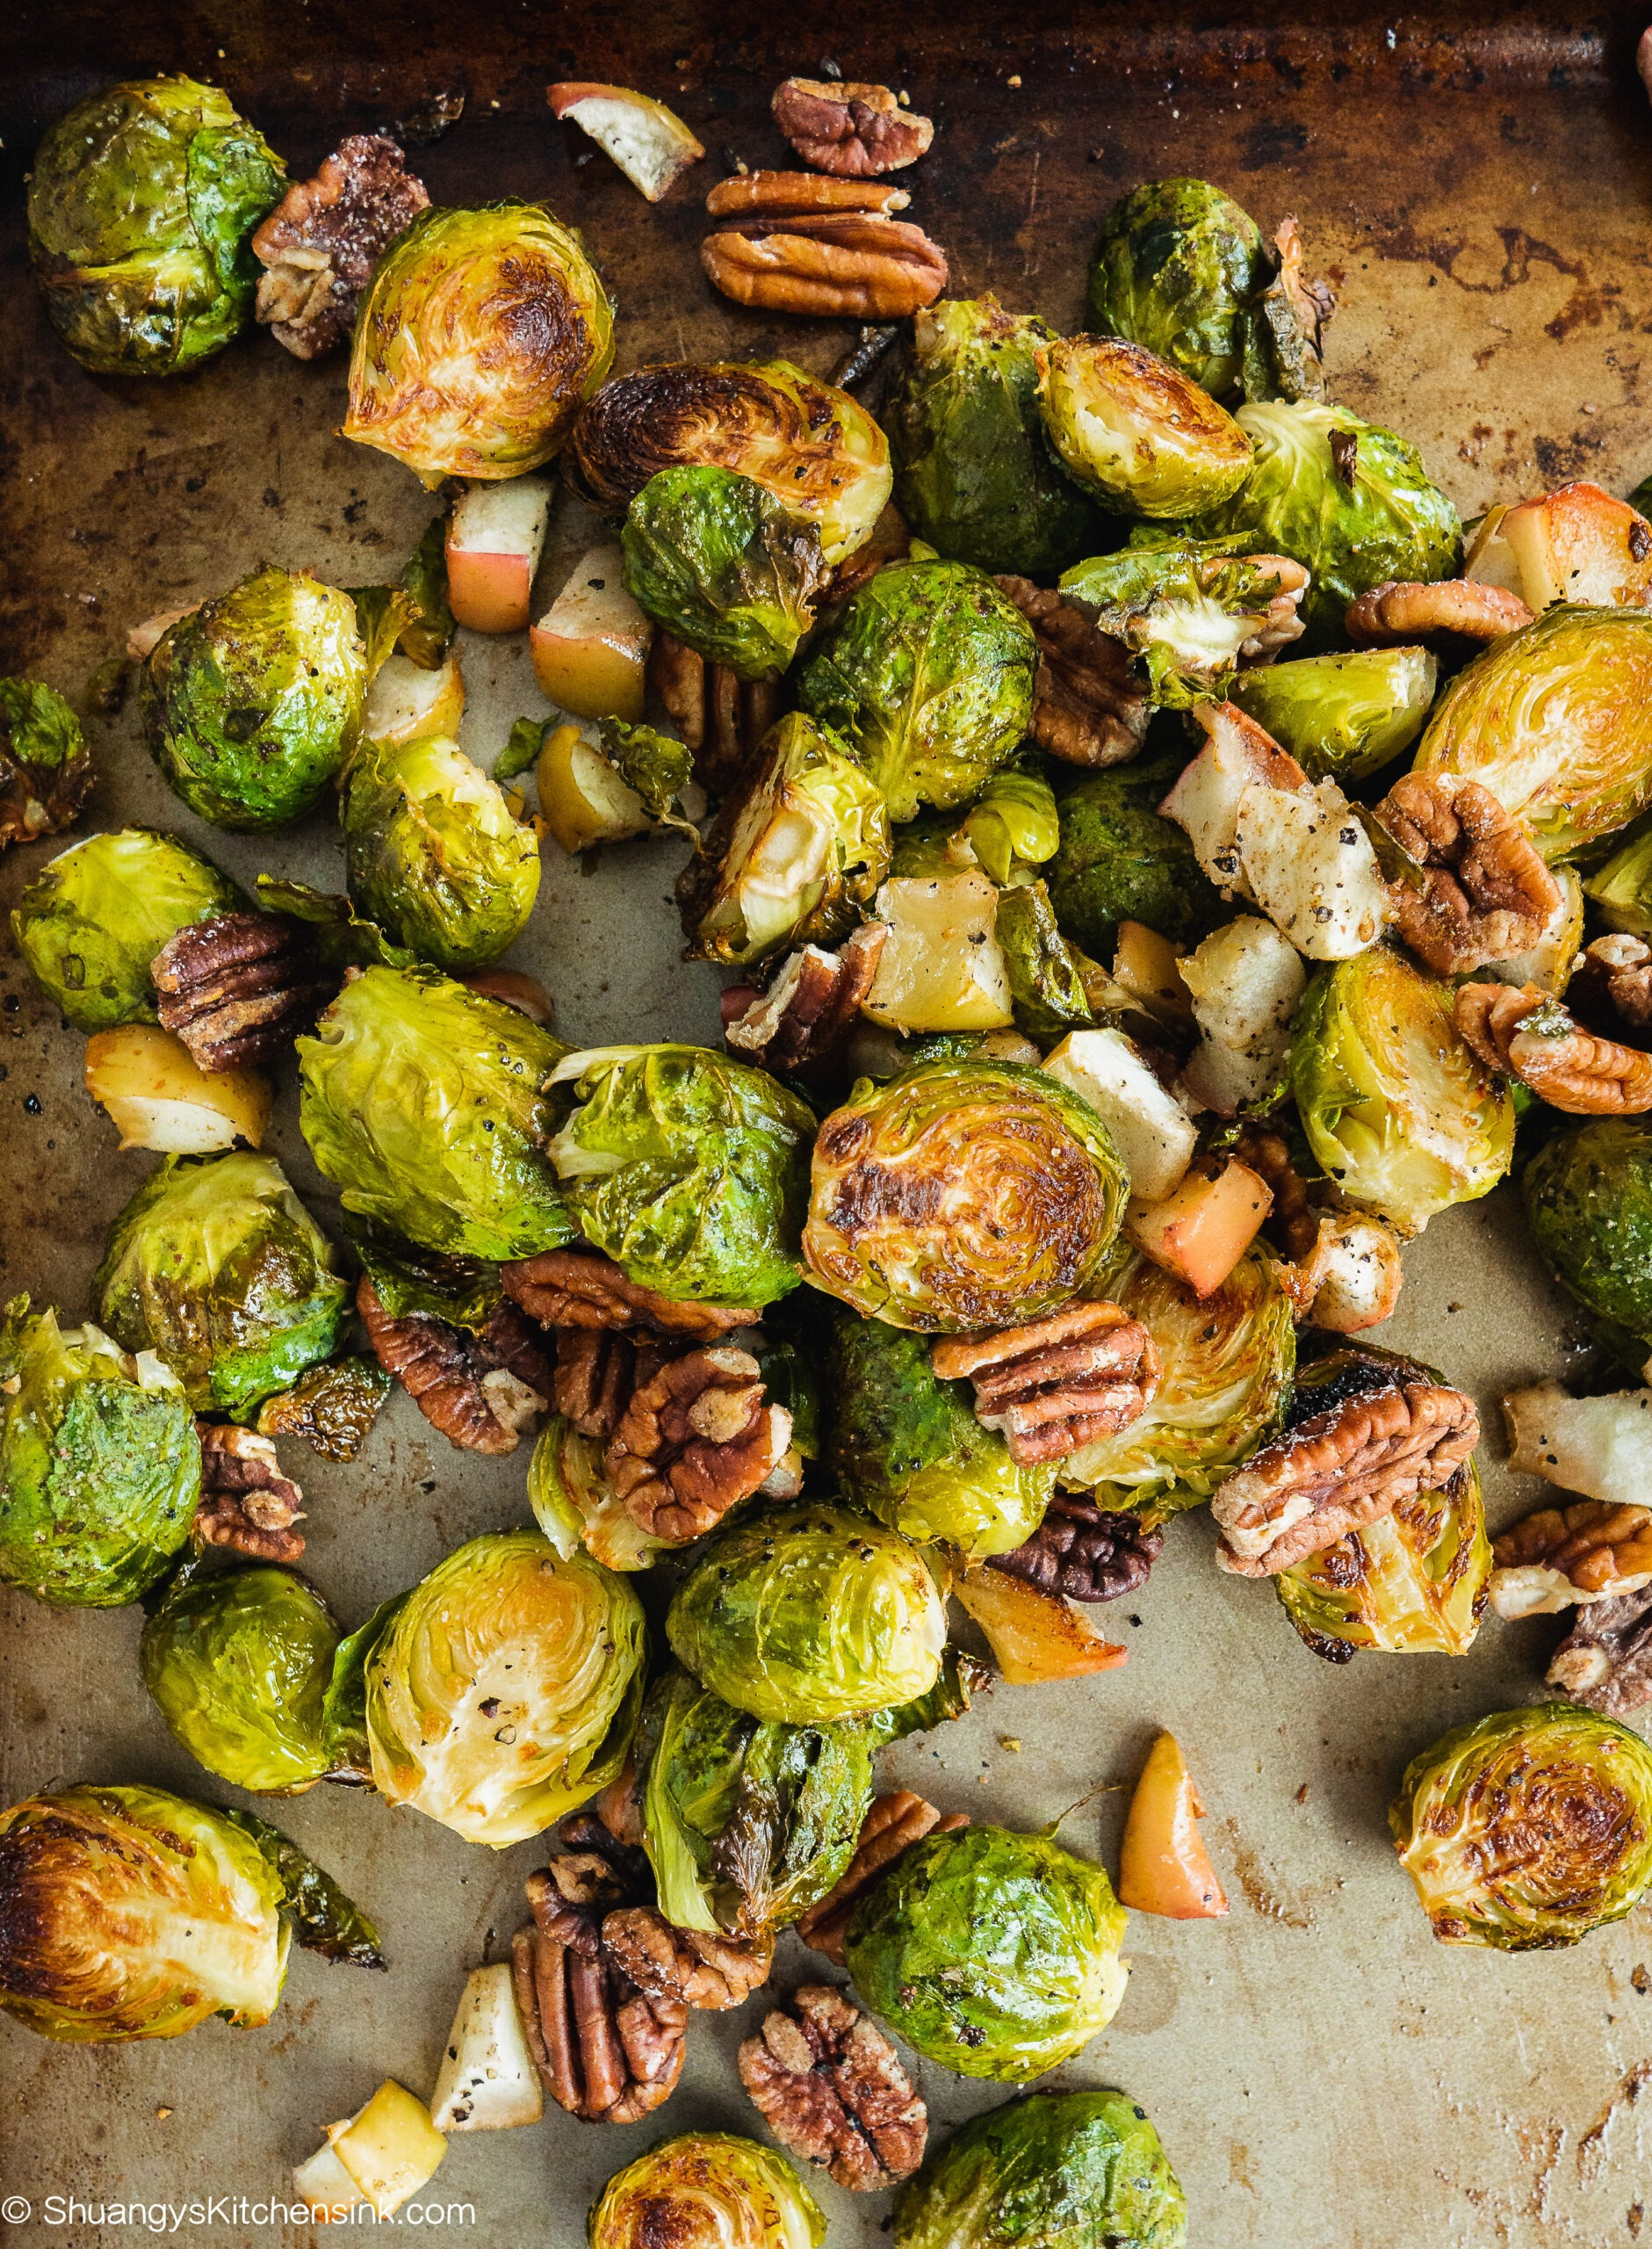 Roasted crispy brussels sprouts with cinnamon apple and toasted pecans on a baking pan fresh out of the oven.